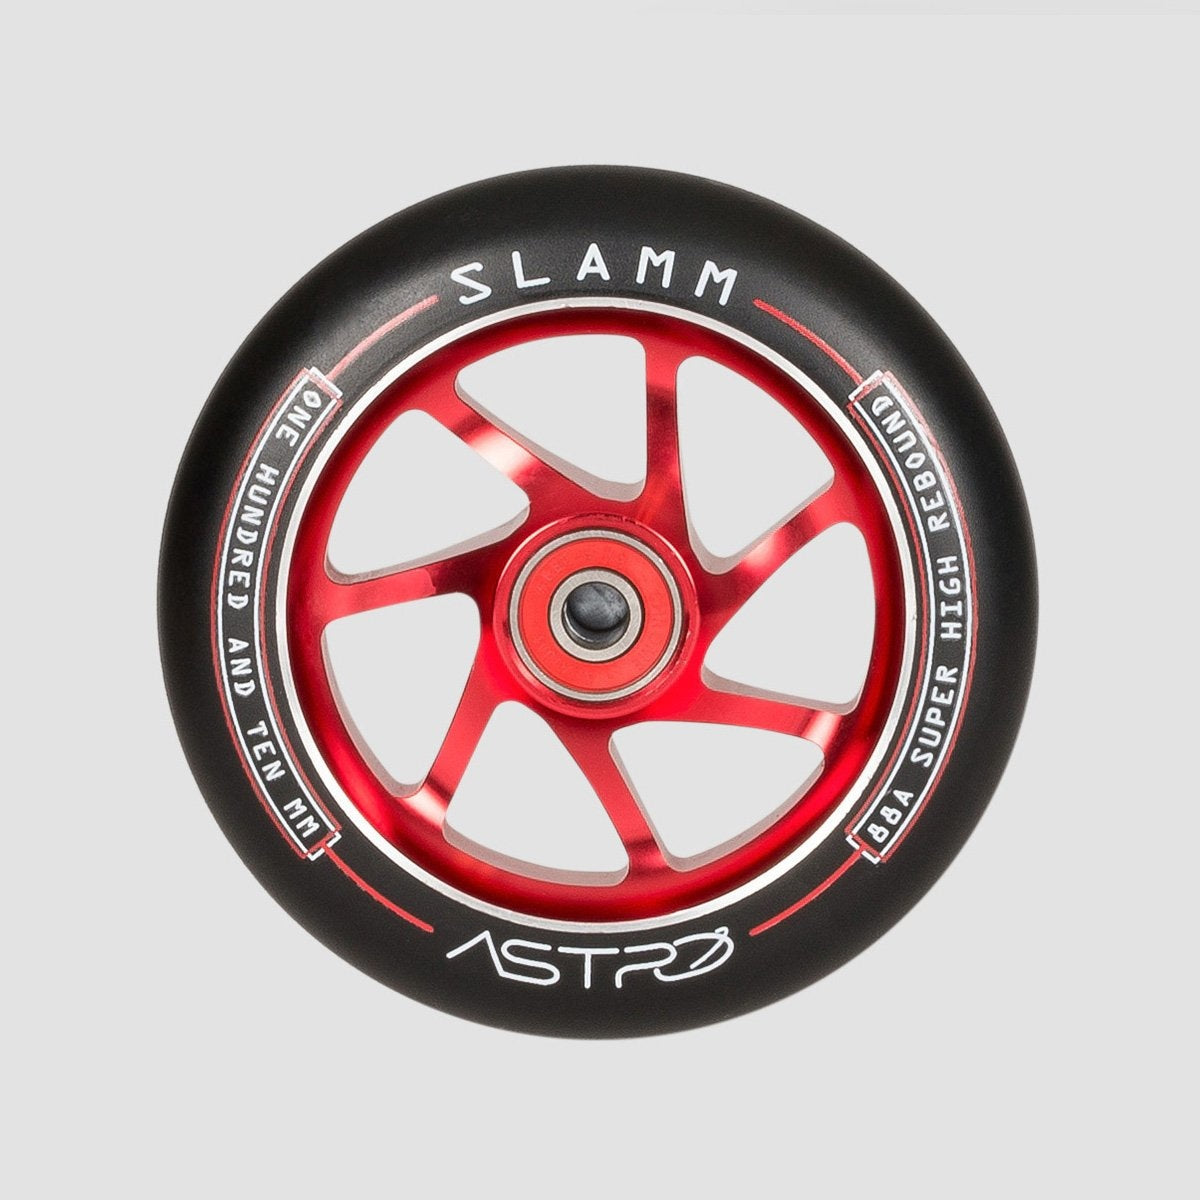 Slamm Astro Scooter Wheel x1 Red 110mm - Scooter